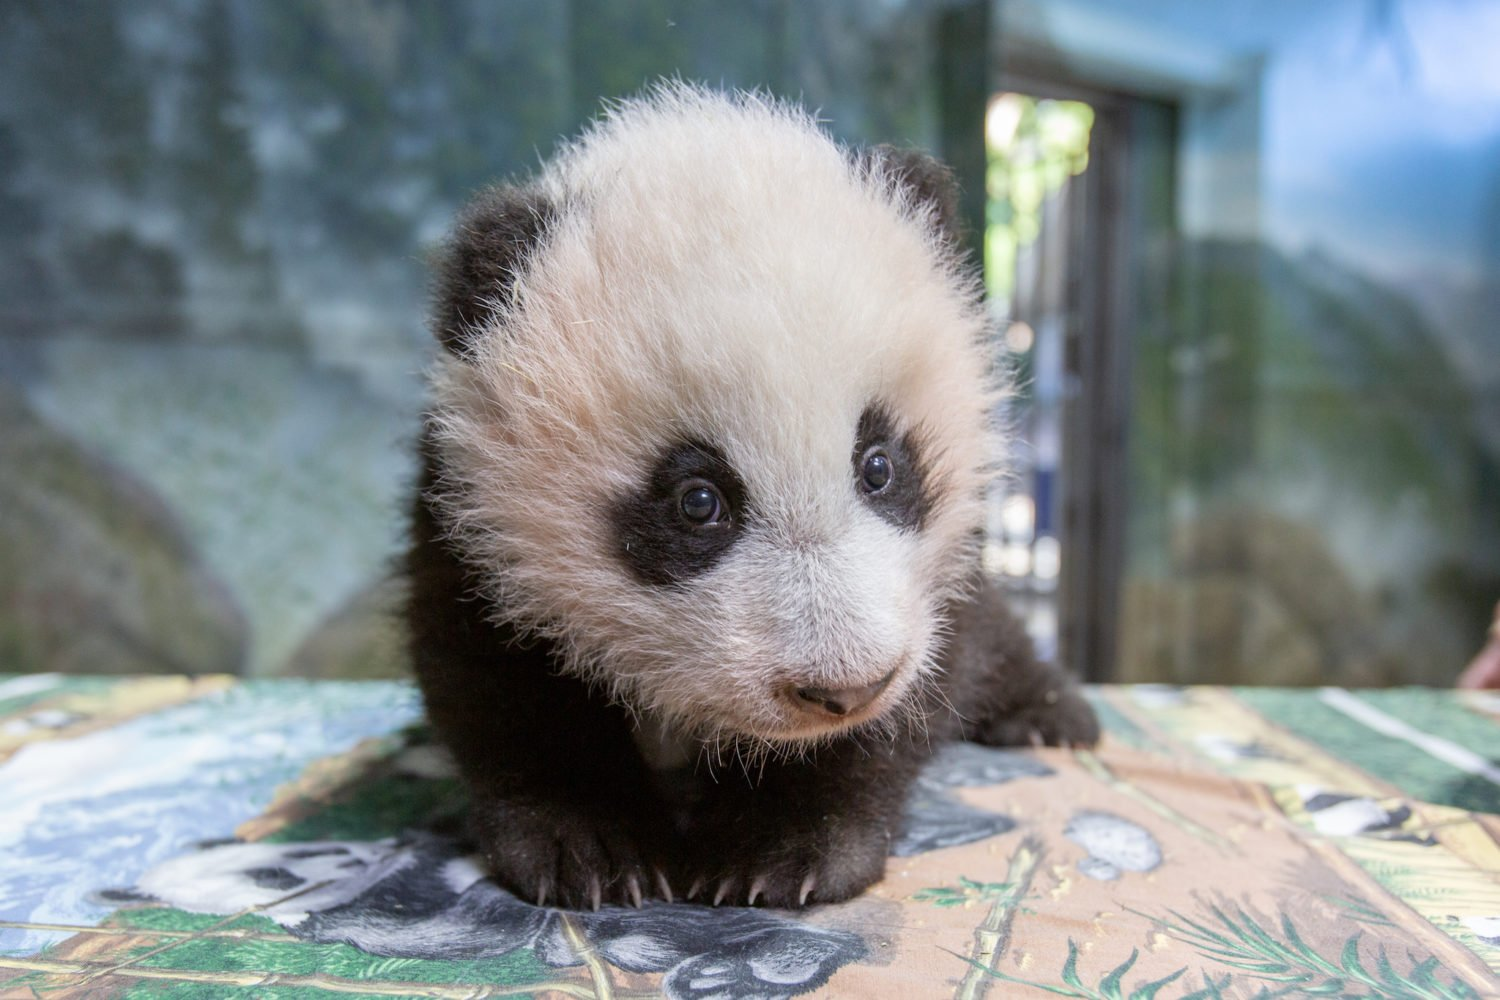 Photograph courtesy of Smithsonian's National Zoo.